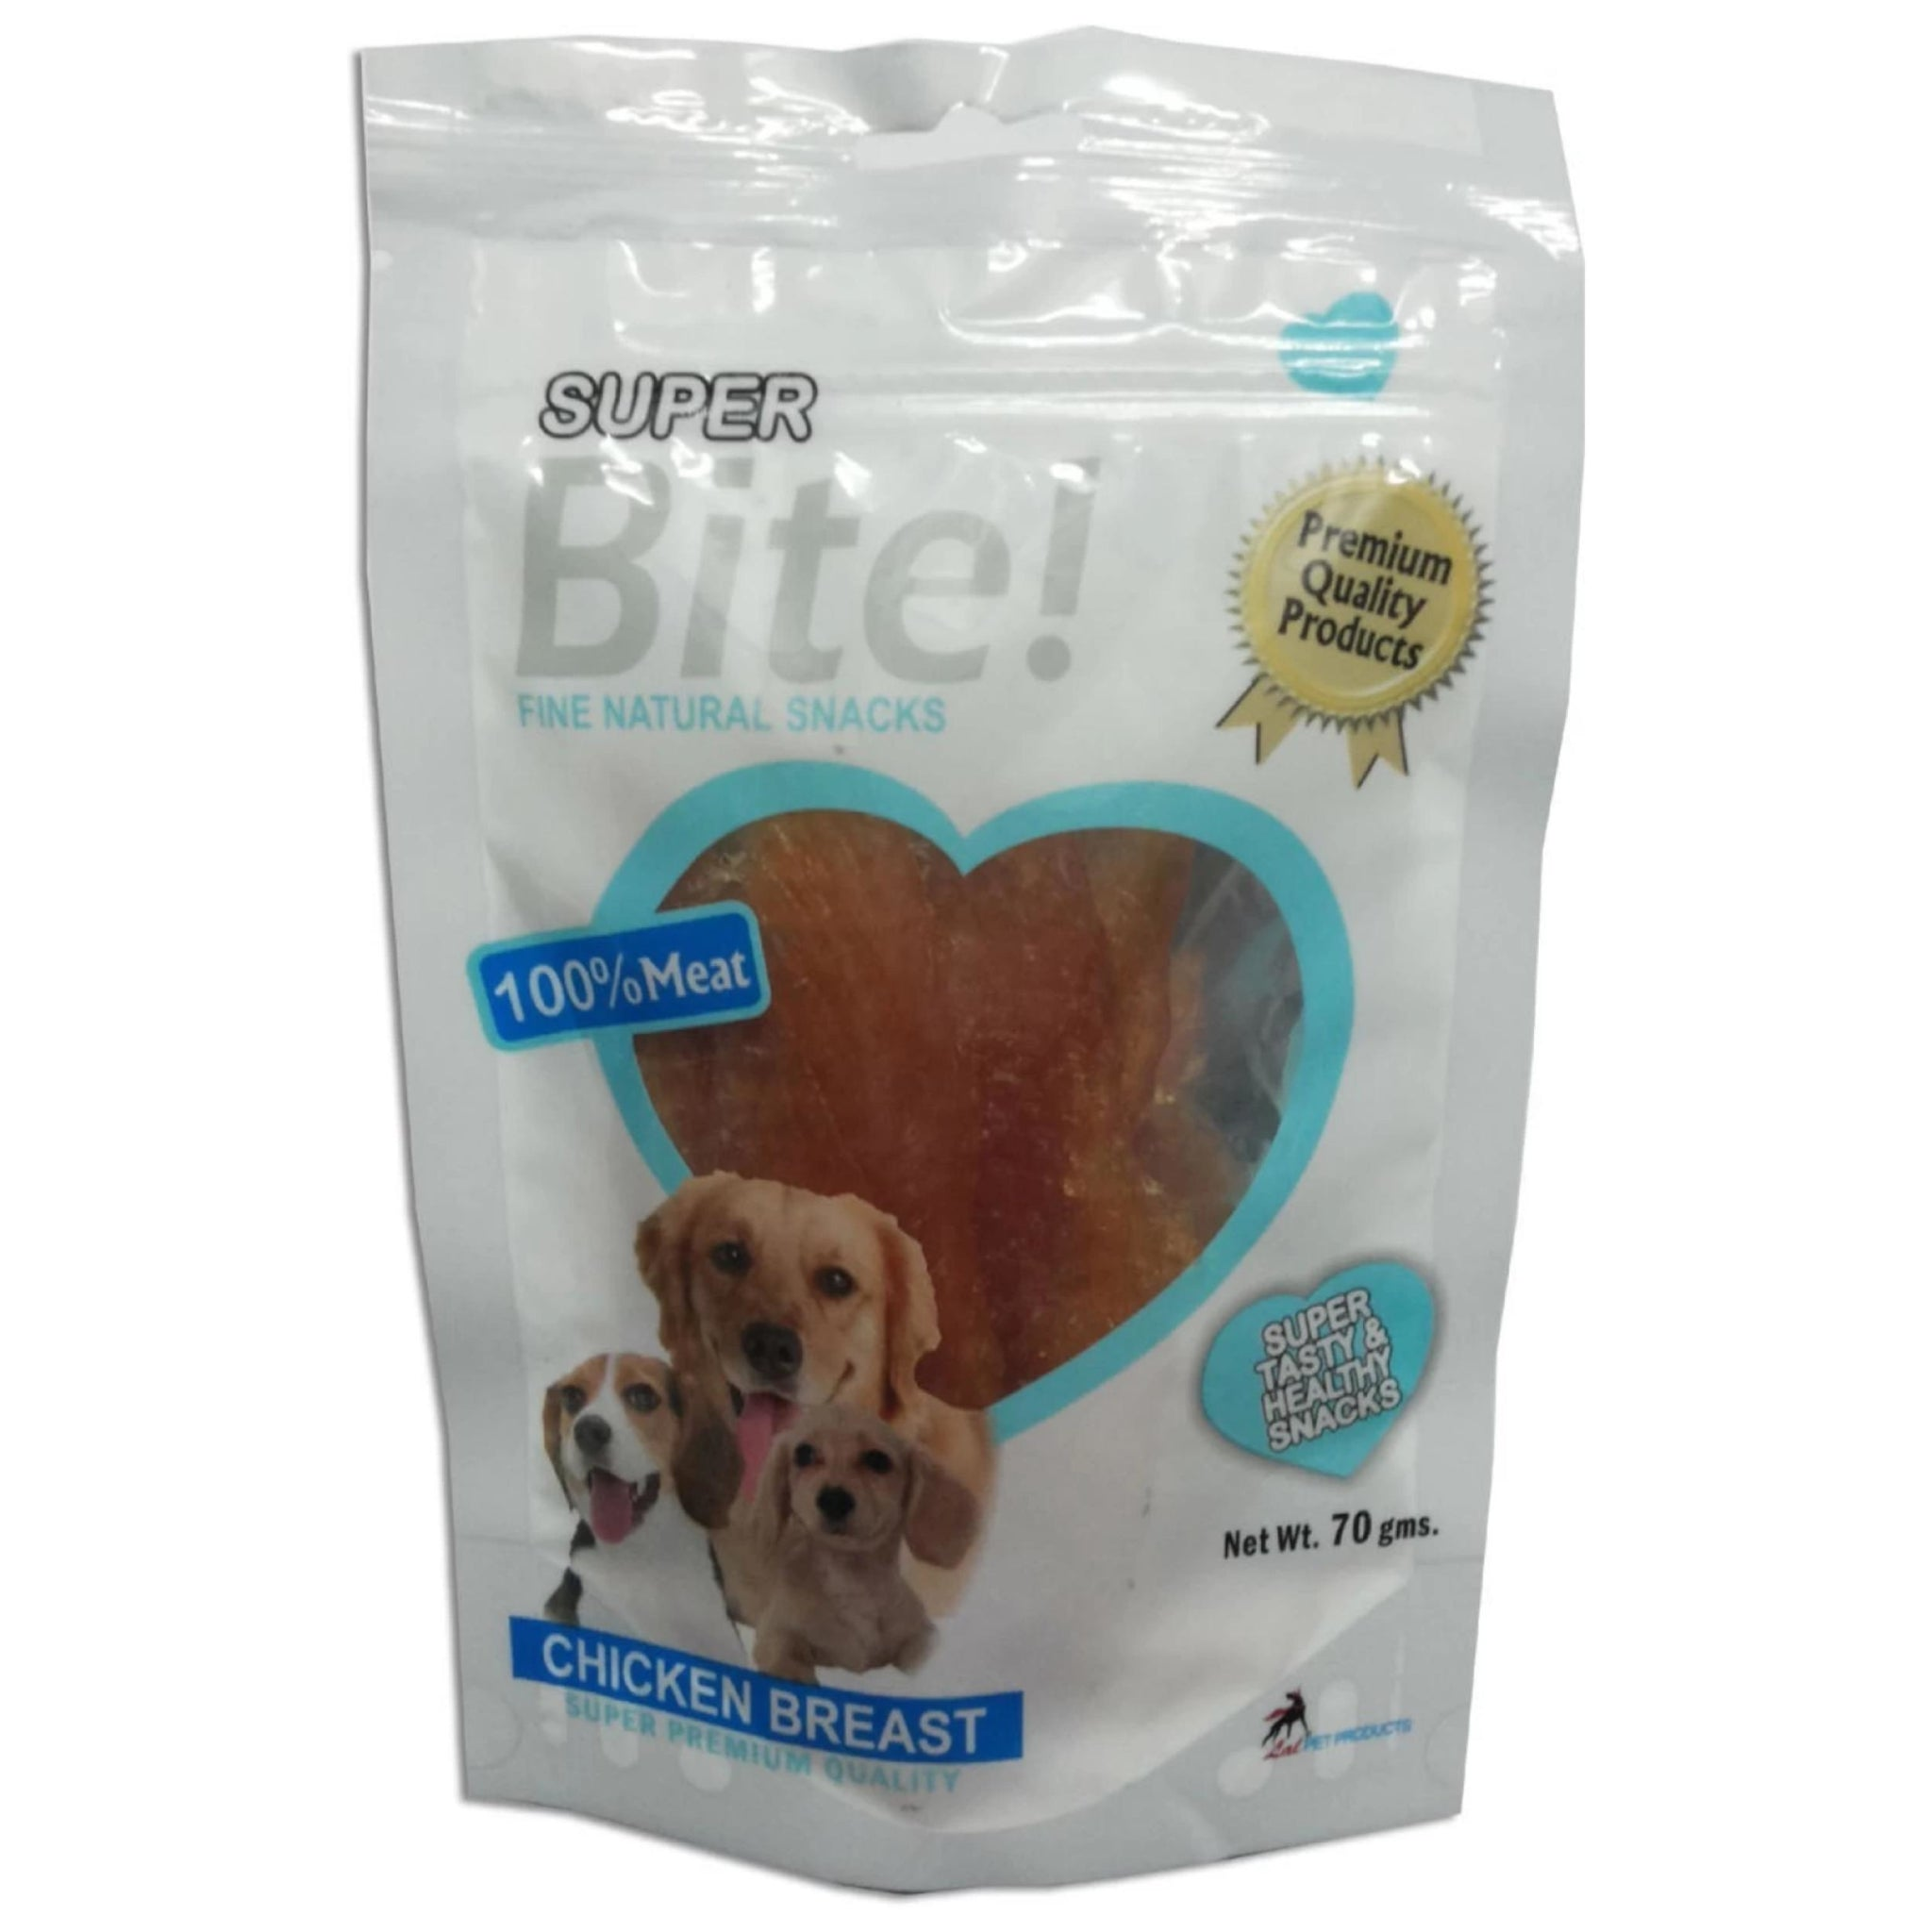 Superbite Chicken Breast Jerky Treat 70gms - Poochles